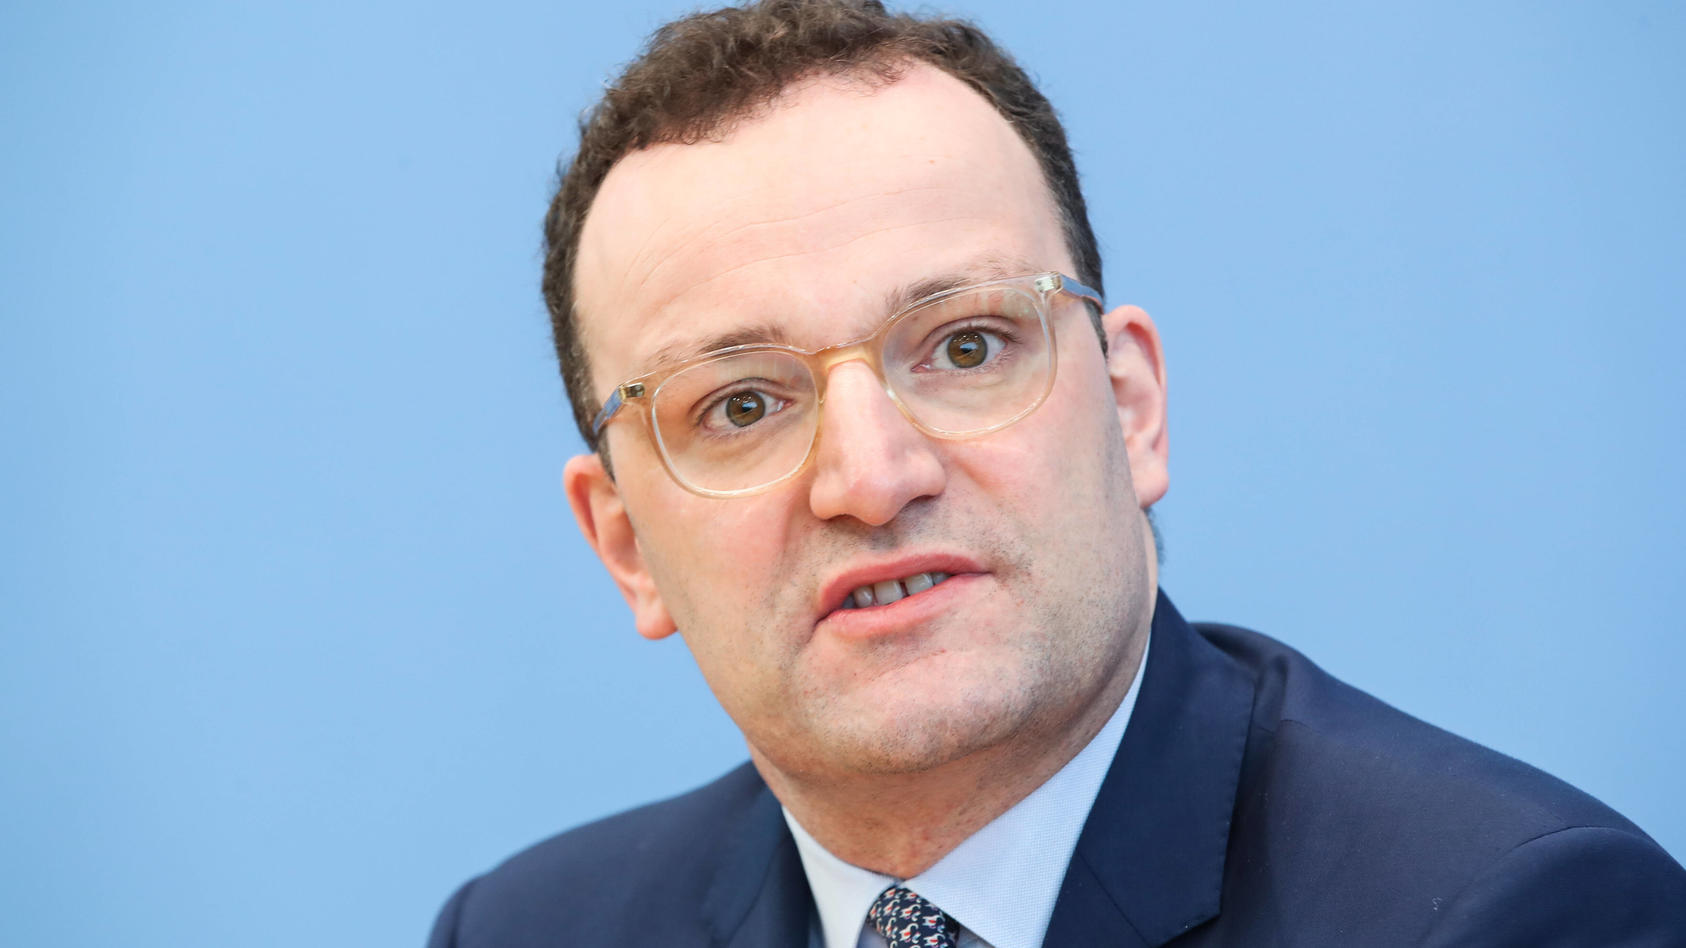 (200311) -- BERLIN, March 11, 2020 -- German Health Minister Jens Spahn attends a press conference of COVID-19 situation